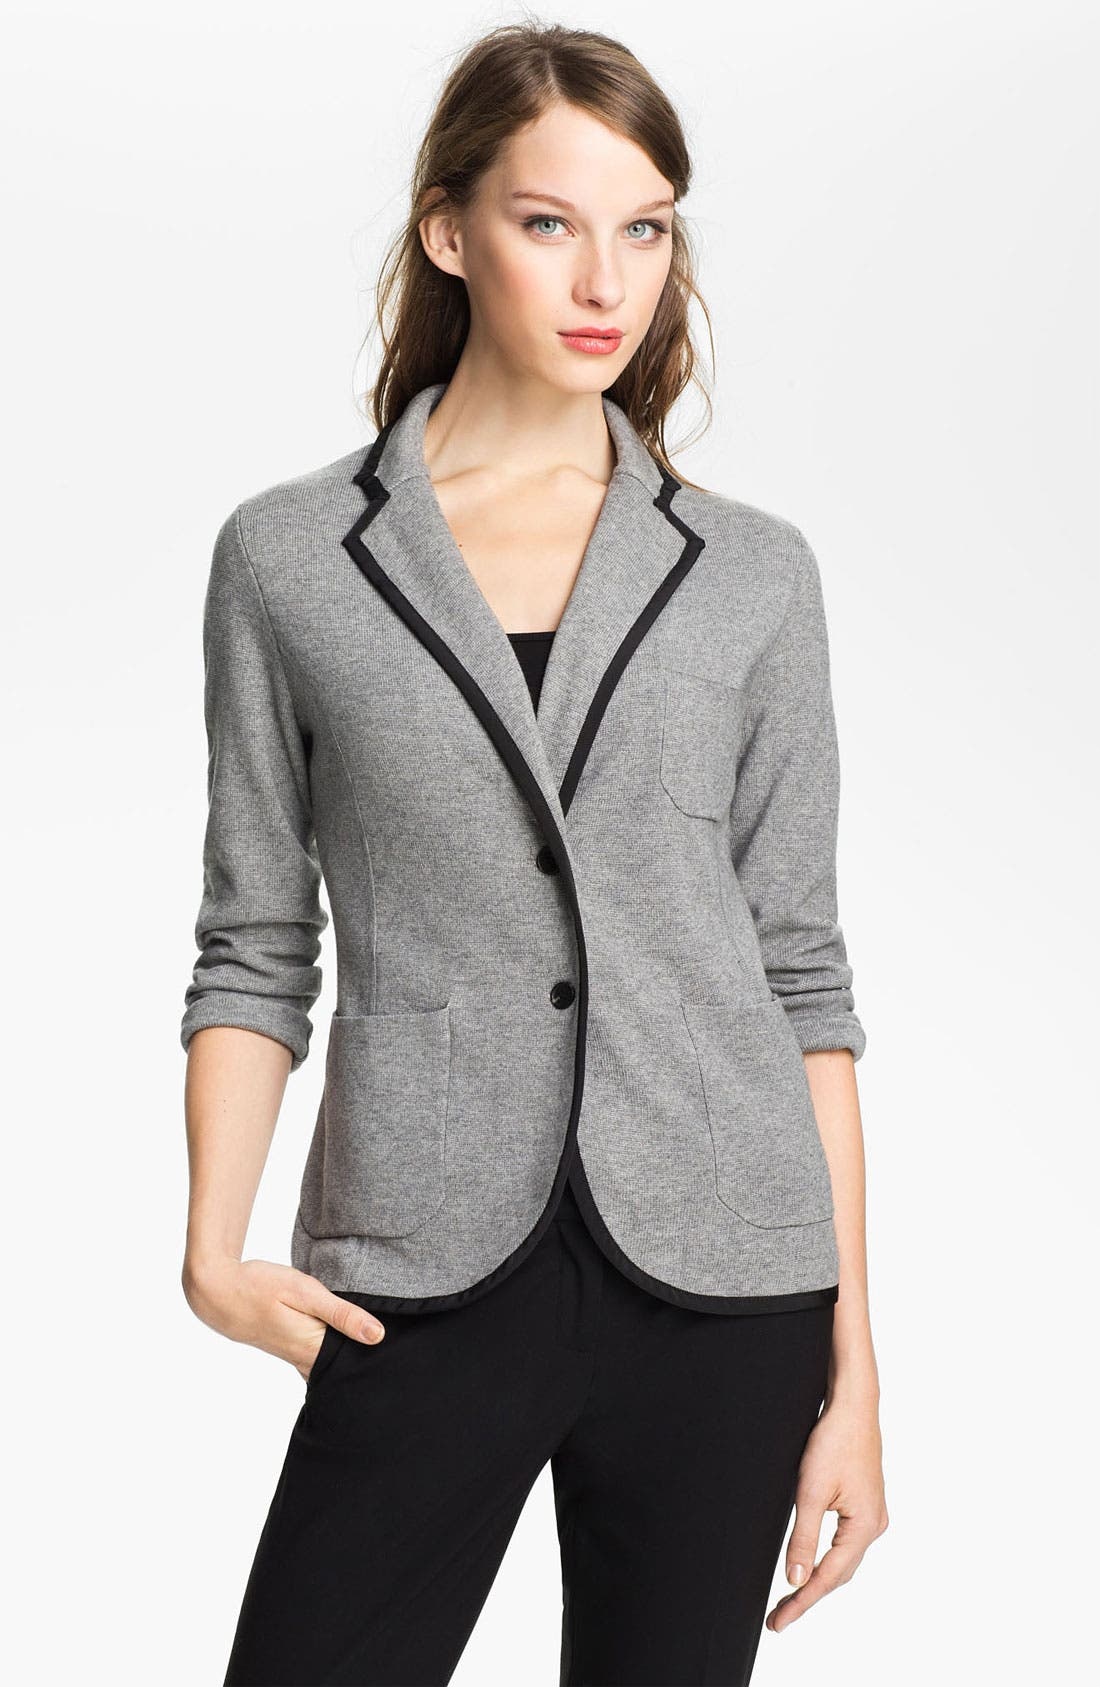 Alternate Image 1 Selected - Vince Camuto 'Milano Stitch' Sweater Jacket